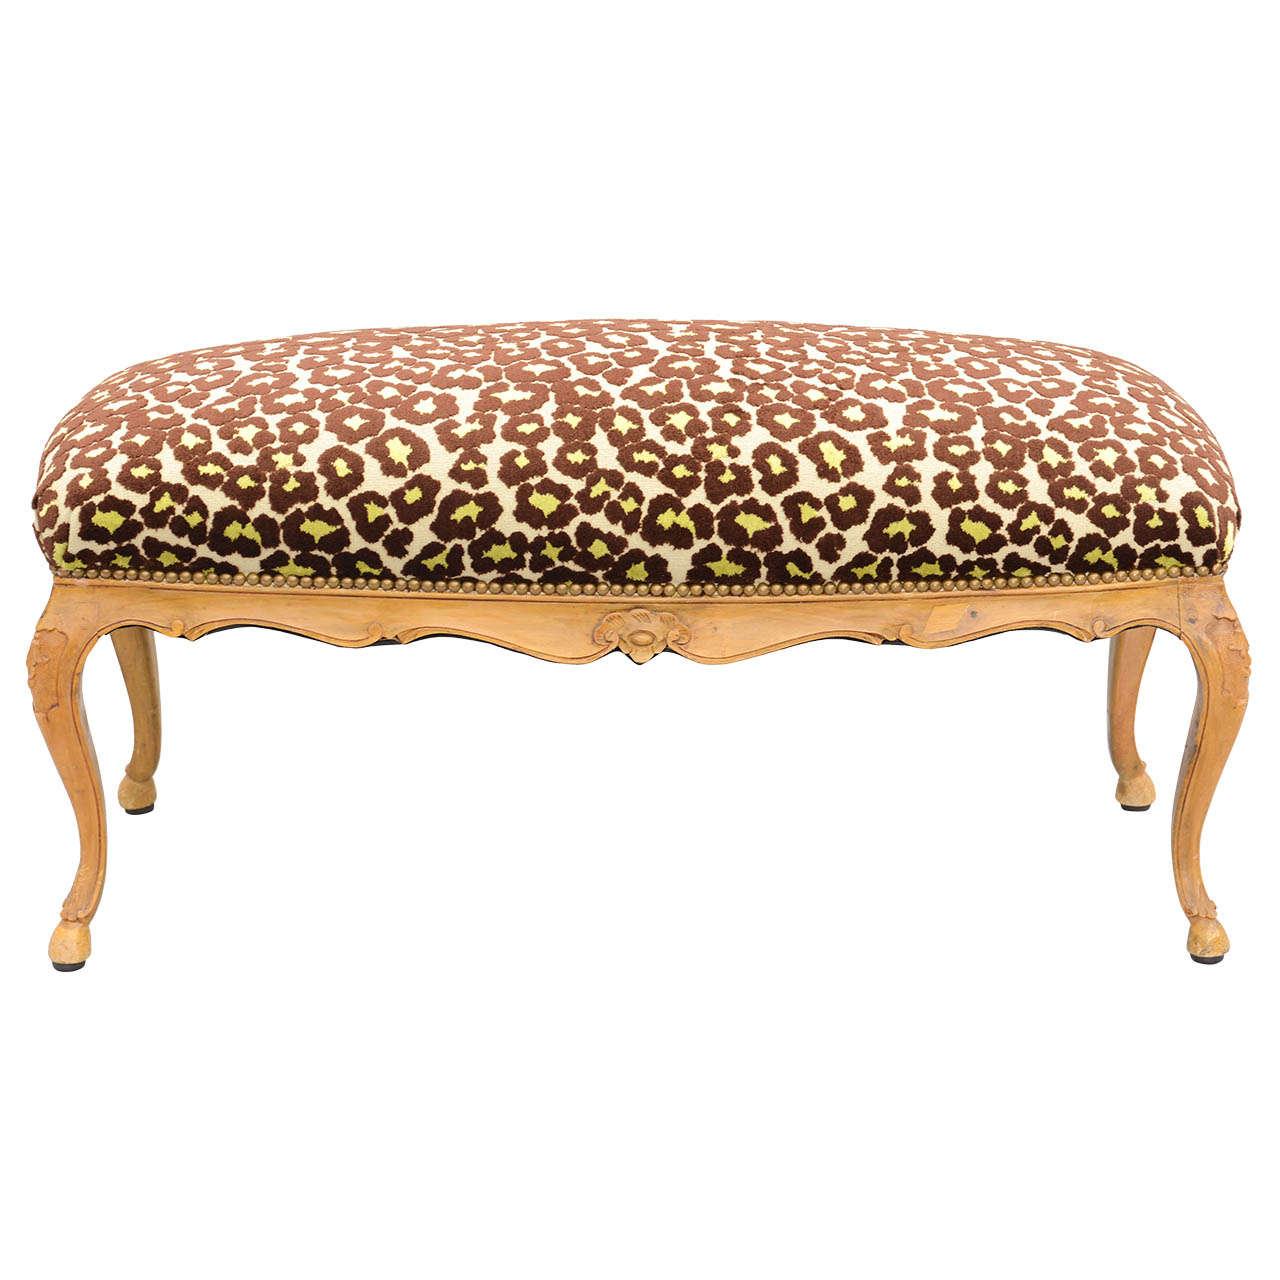 Louis XV Style Upholstered Bench